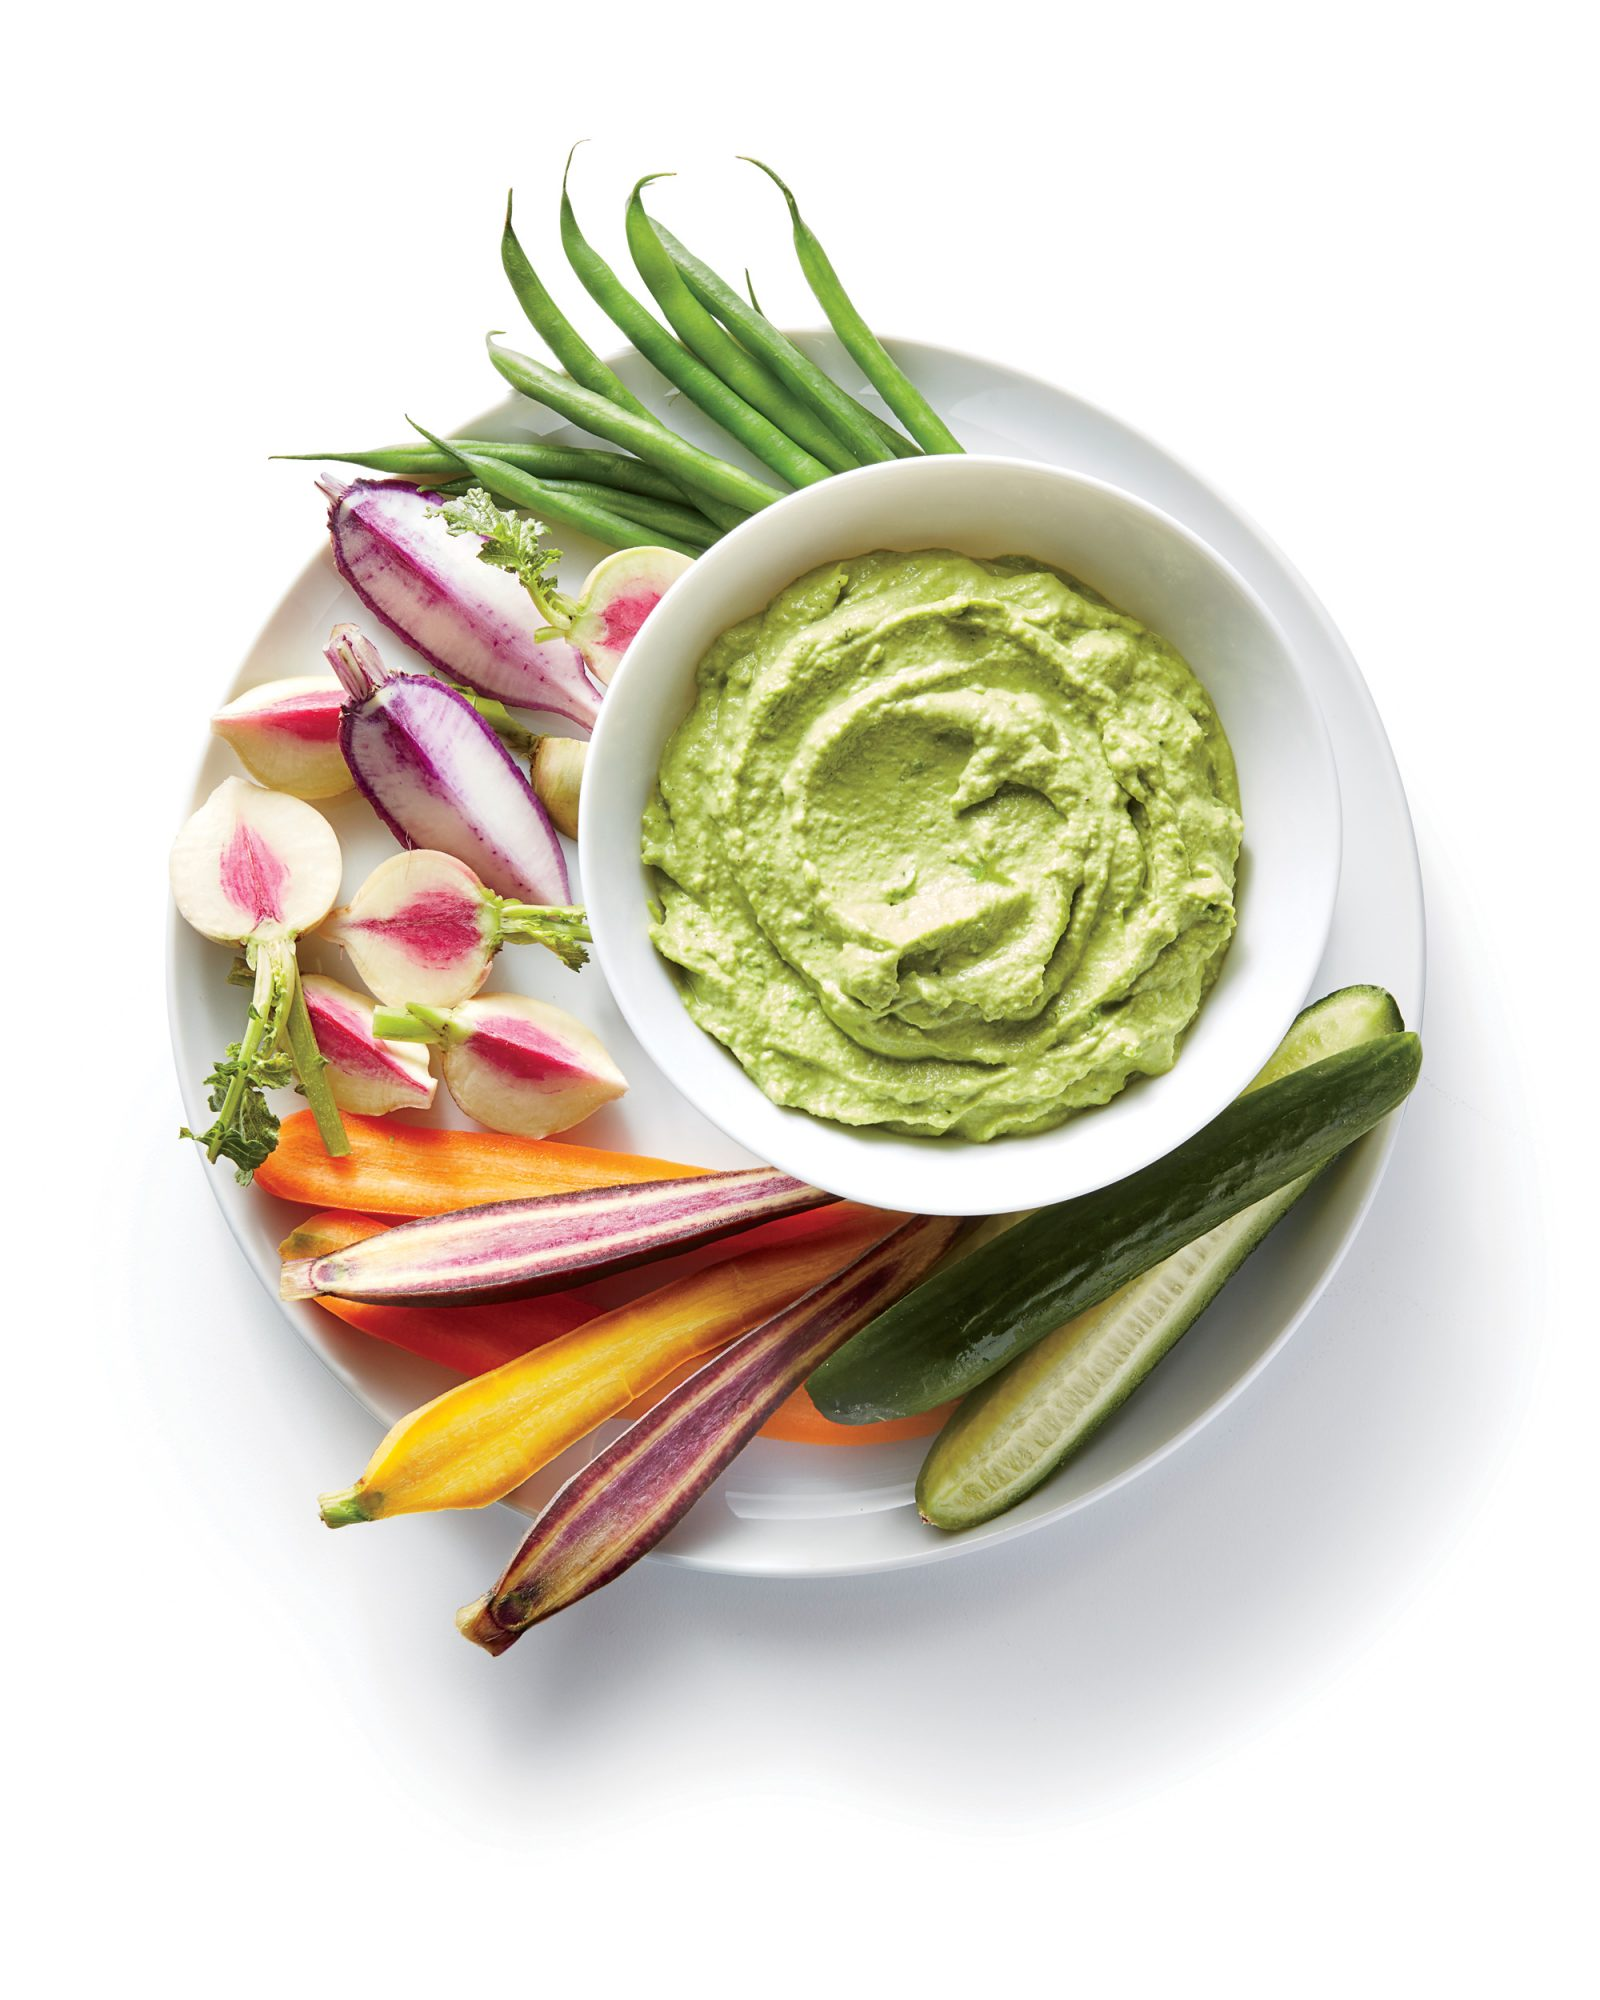 Green Pea and Parsley Hummus